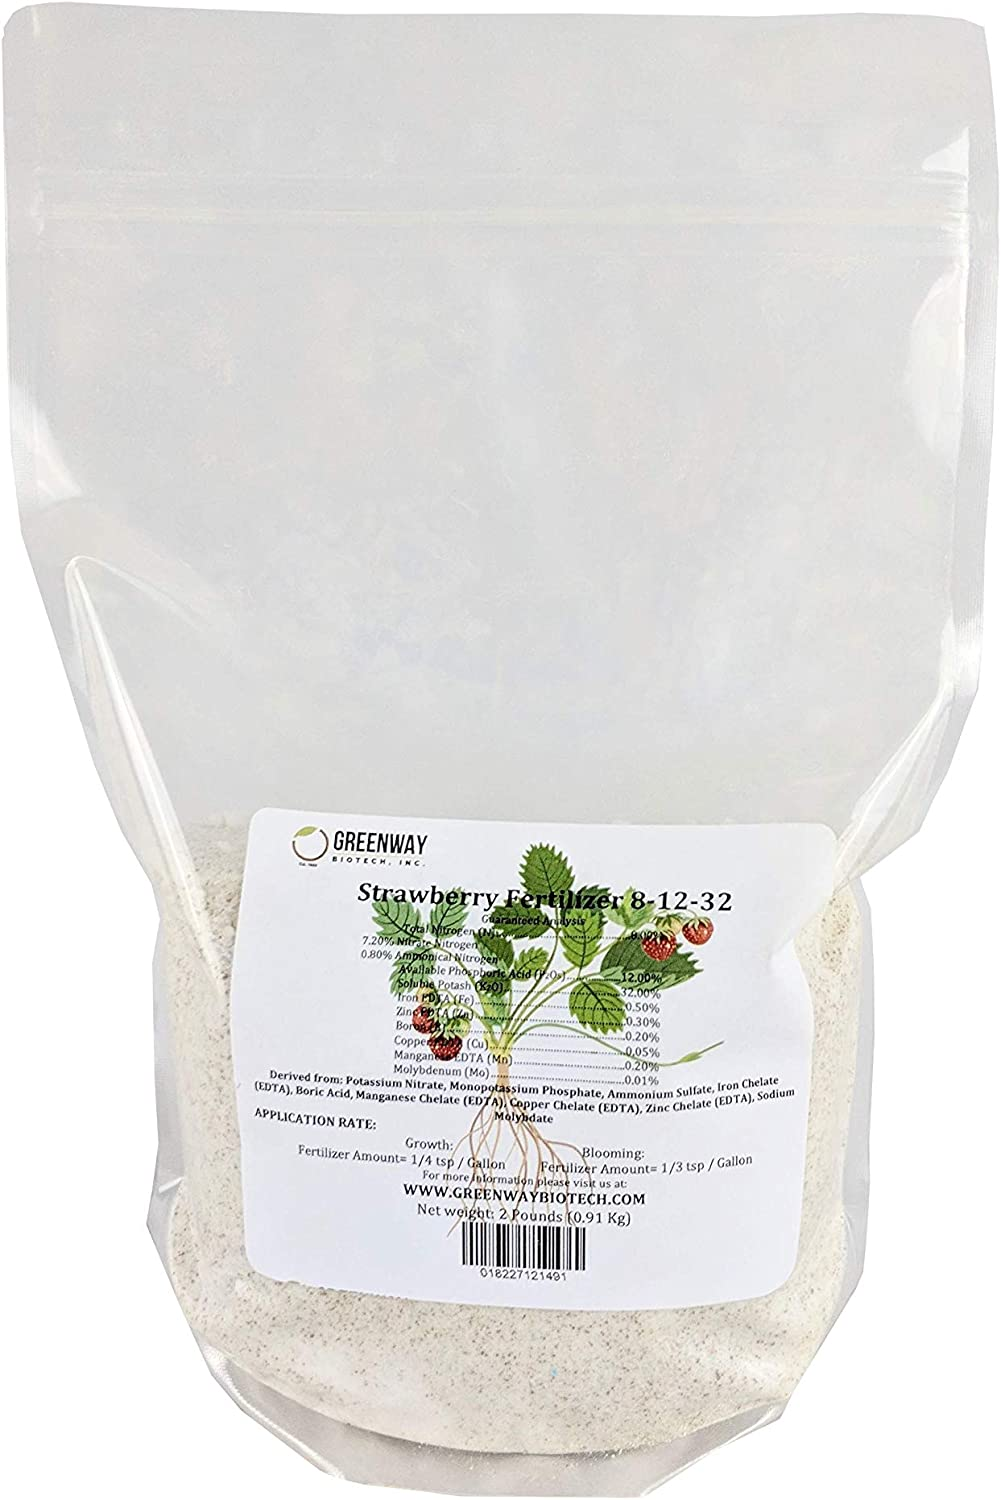 Strawberry Fertilizer 8-12-32 Powder 100% Water Soluble Plus Micro Nutrients and Trace Minerals Greenway Biotech Brand 2 Pounds (Makes 400 Gallons)